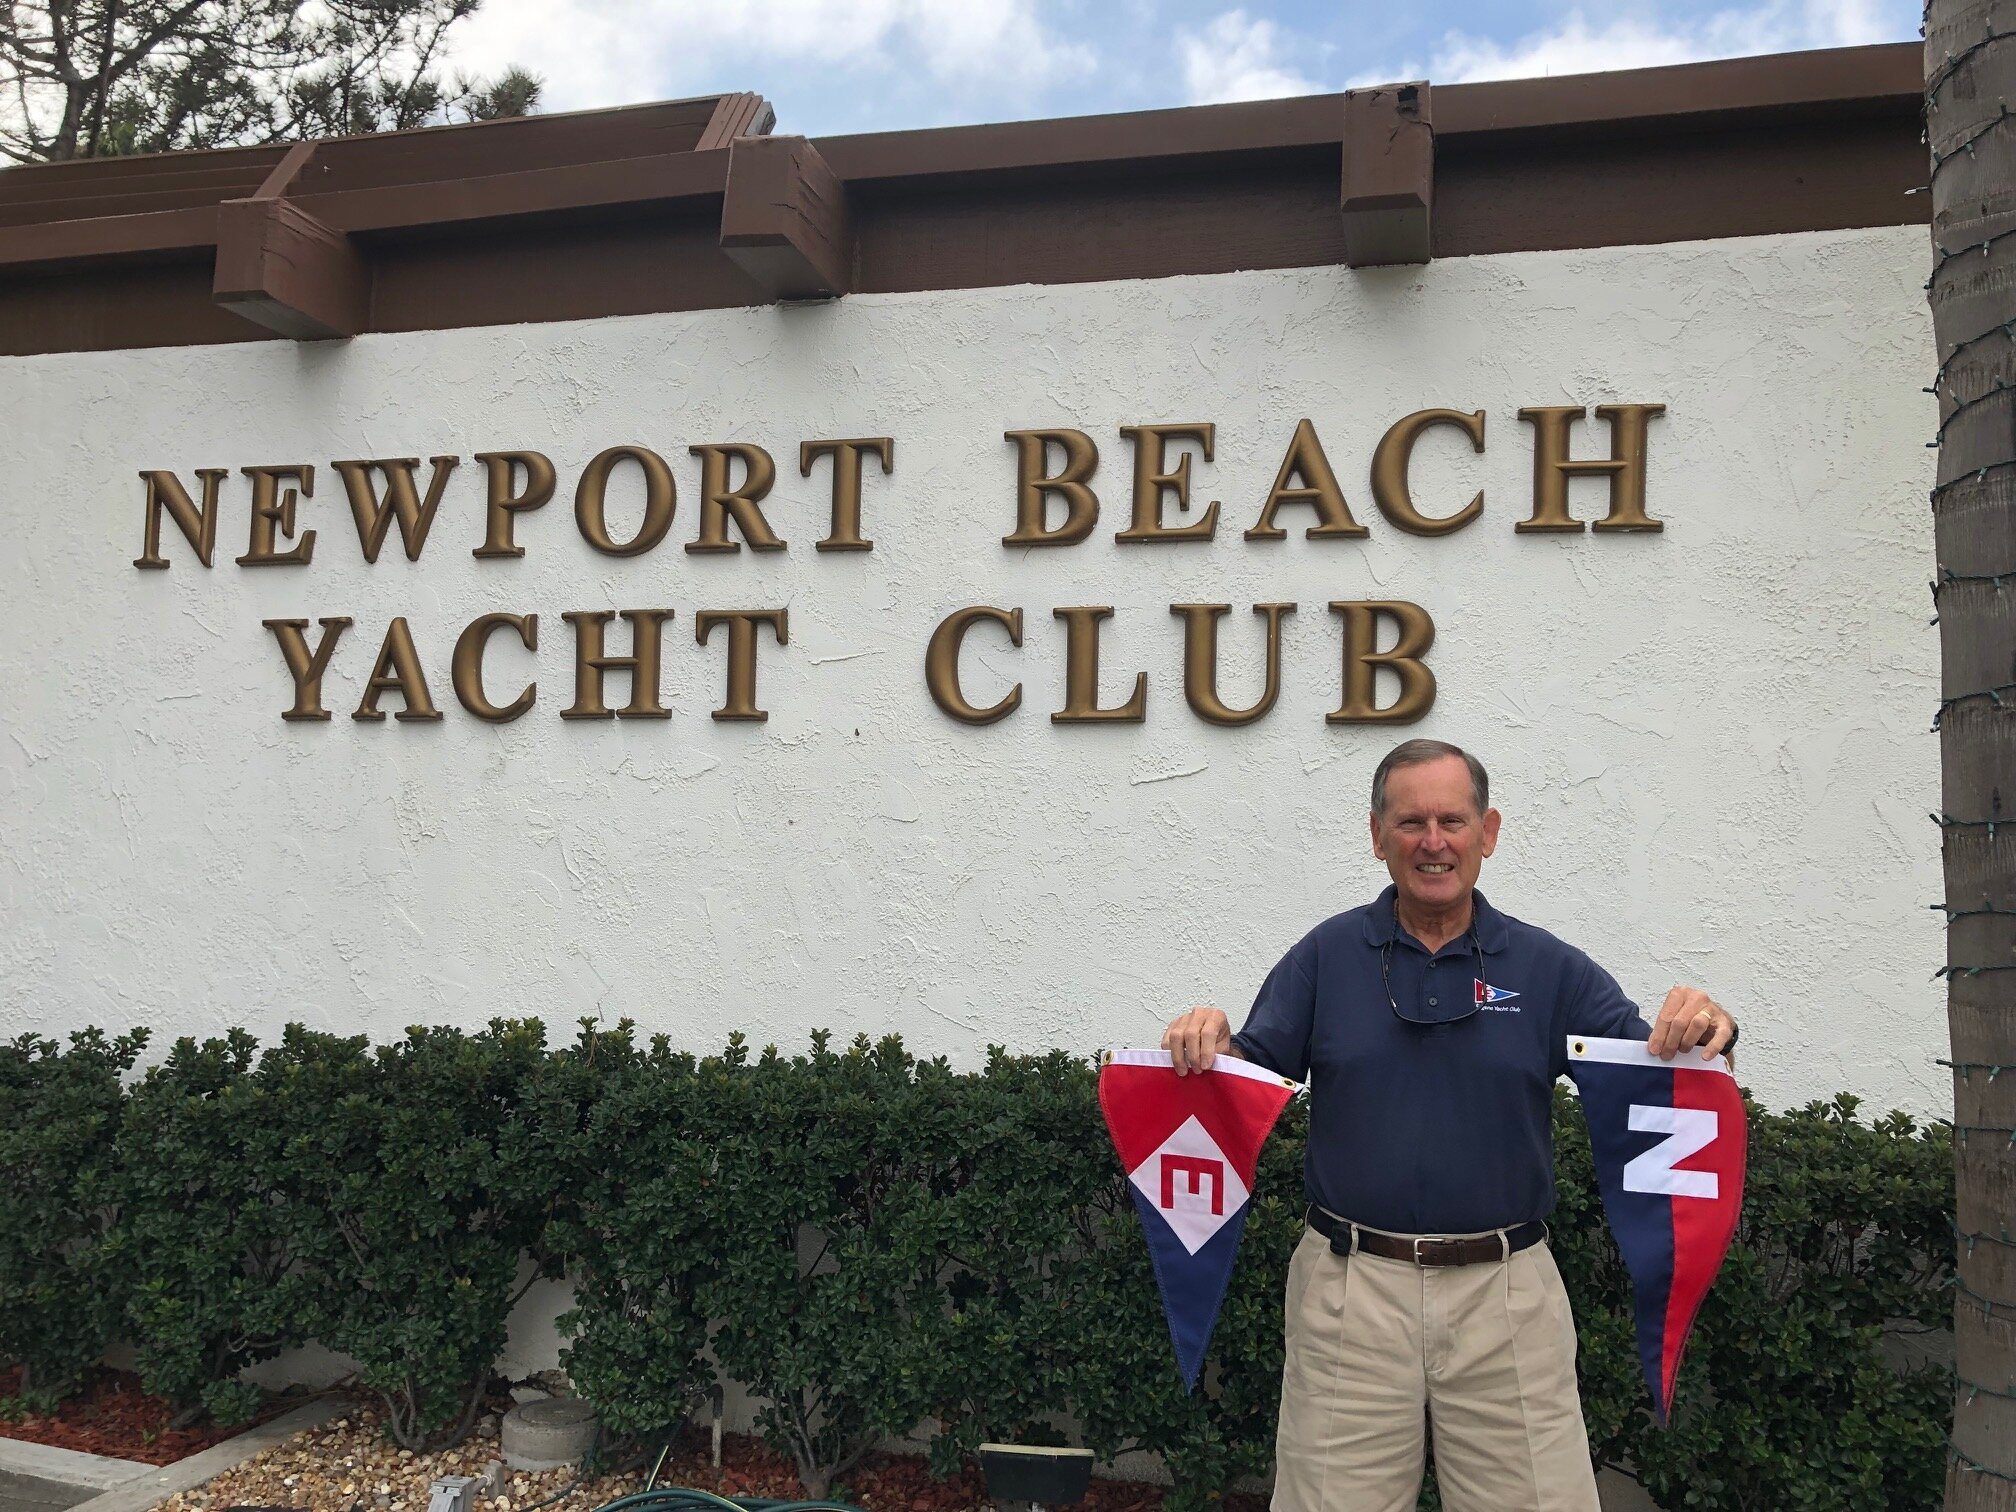 Gary exchanges burgees with the Newport Beach Yacht Club in California